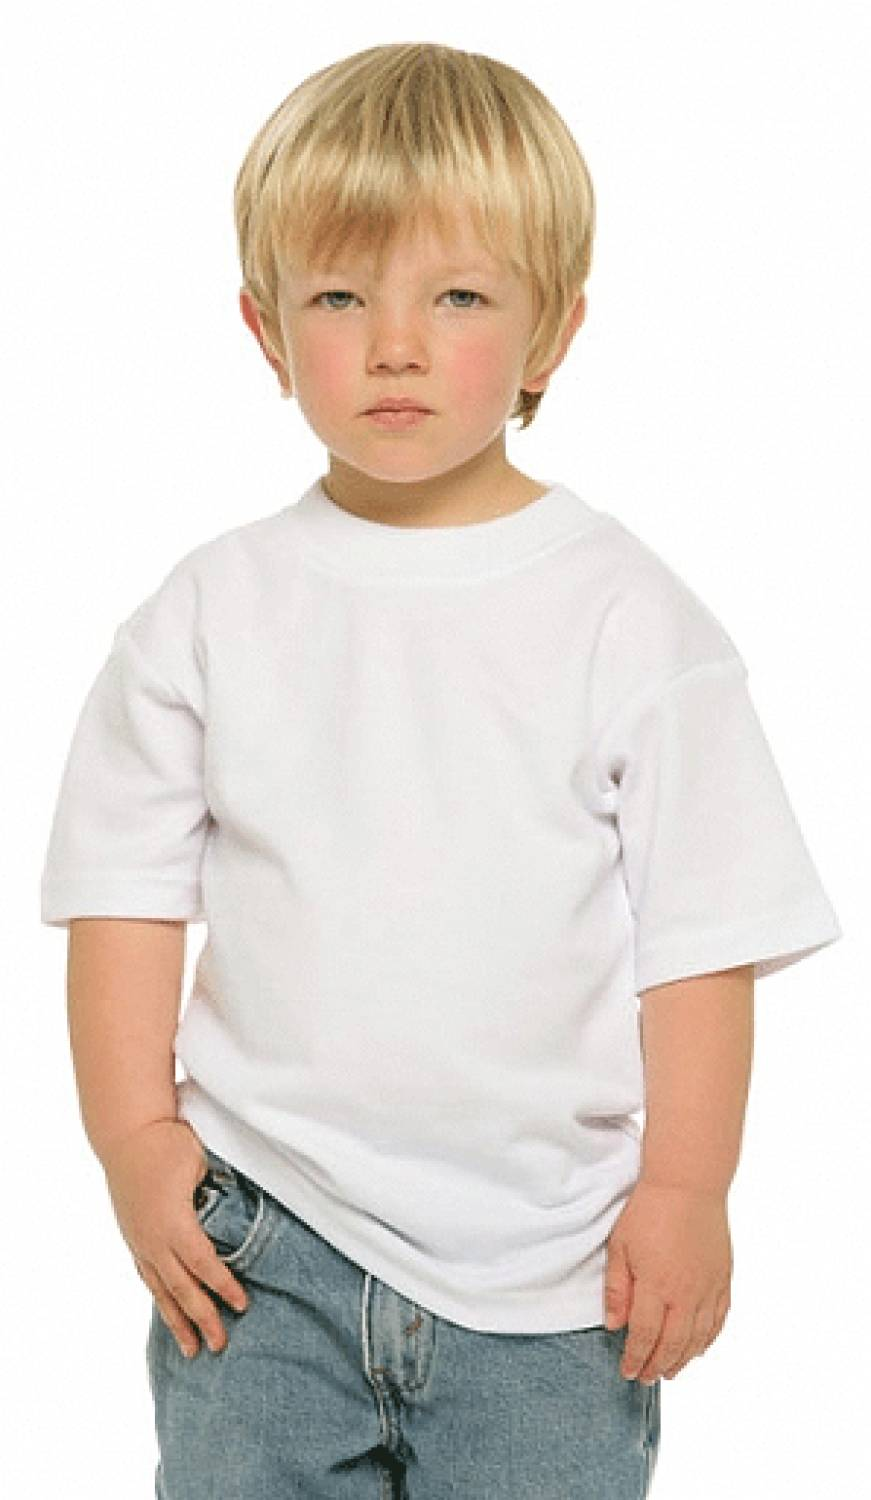 High quality kids t-shirts can be tough to come by. But at Clothing Shop Online, we offer a full line of kids apparel at wholesale prices for you to choose from. We offer a wide variety of kids t-shirt options, including the LAT Youth Baseball Fine Jersey Tee.